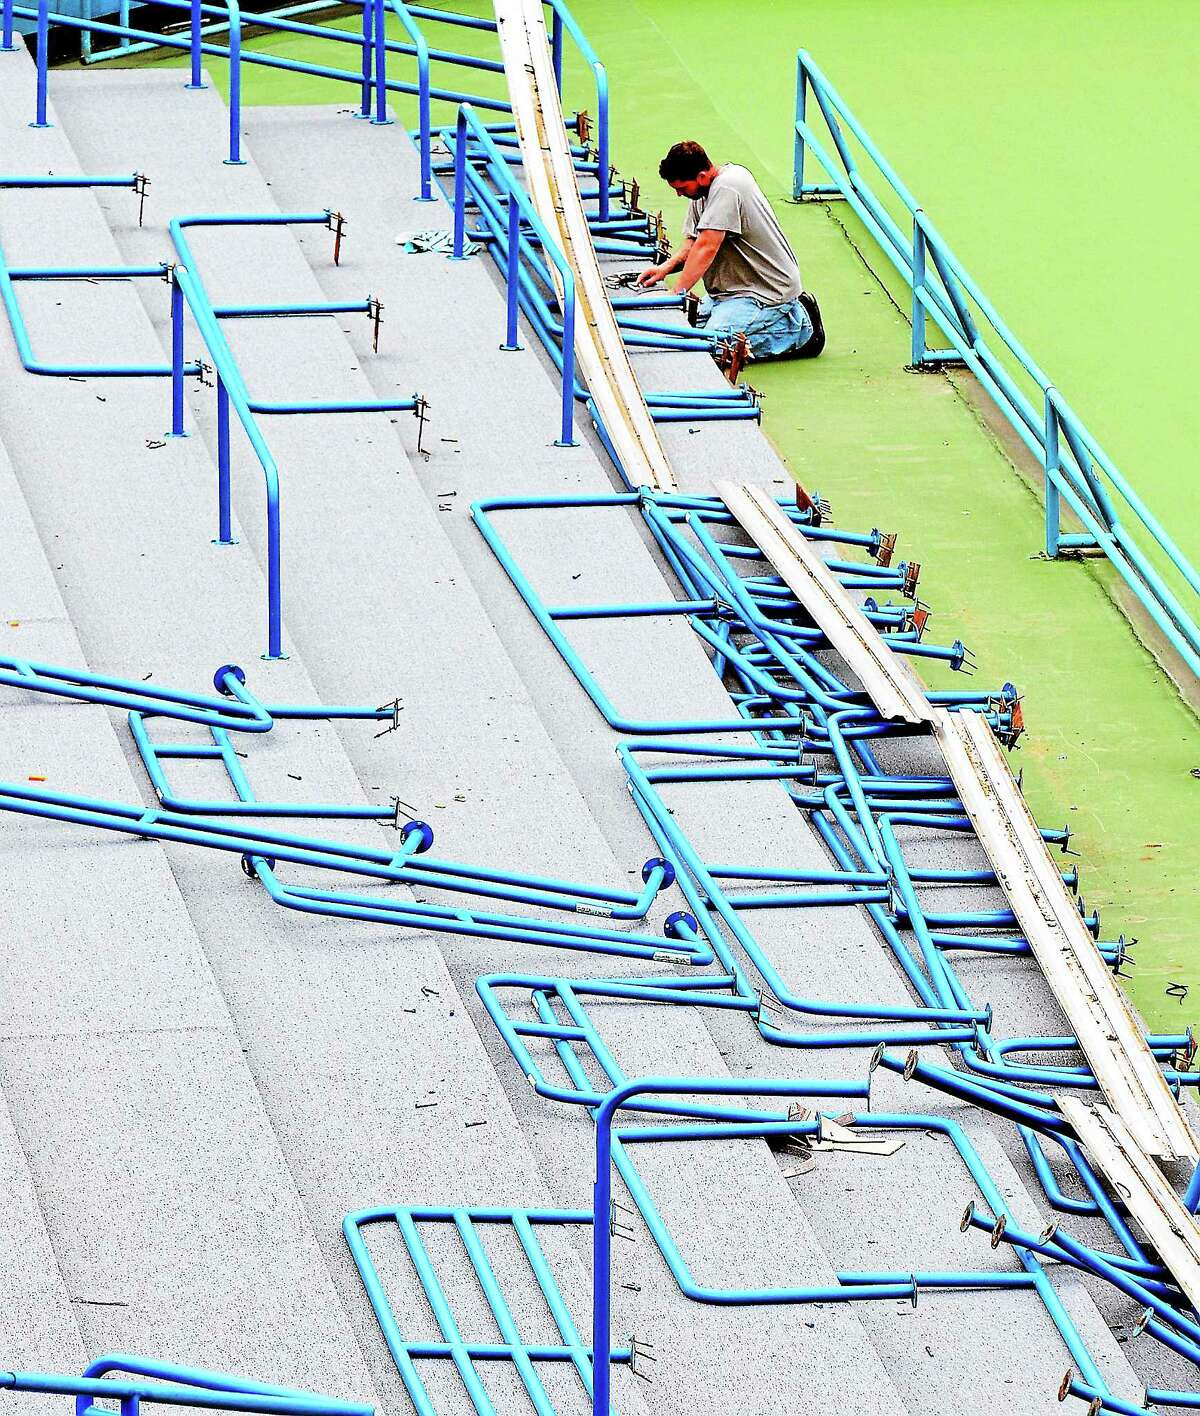 An installer works on railings in the Connecticut Tennis Center stadium court.